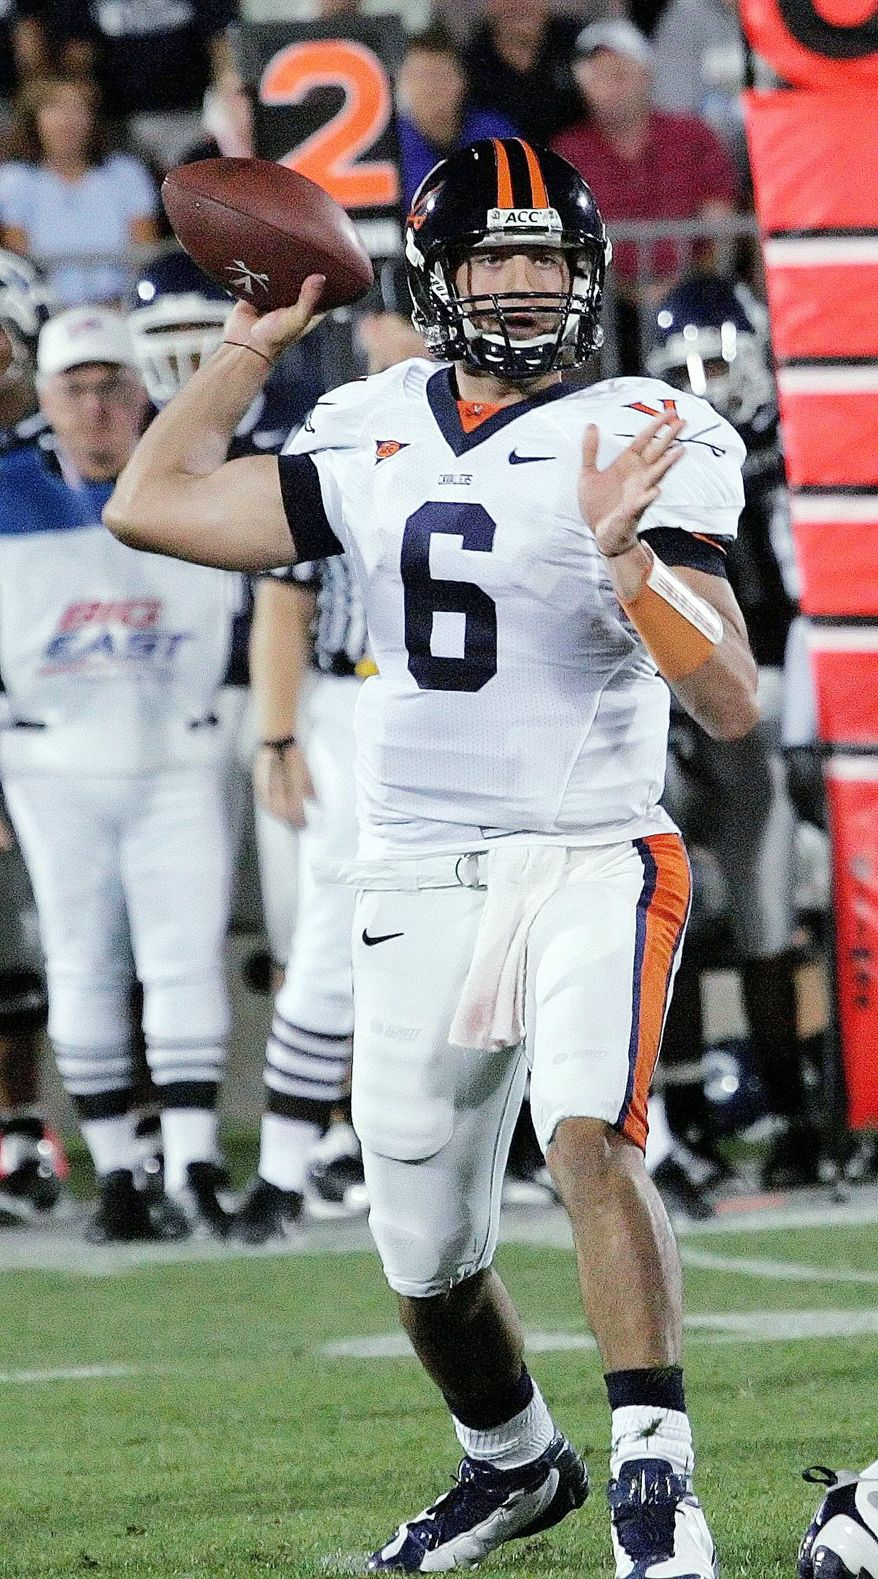 Former UVa. quarterback Marc Verica was released Wednesday by the Washington Redskins. (Associated Press)